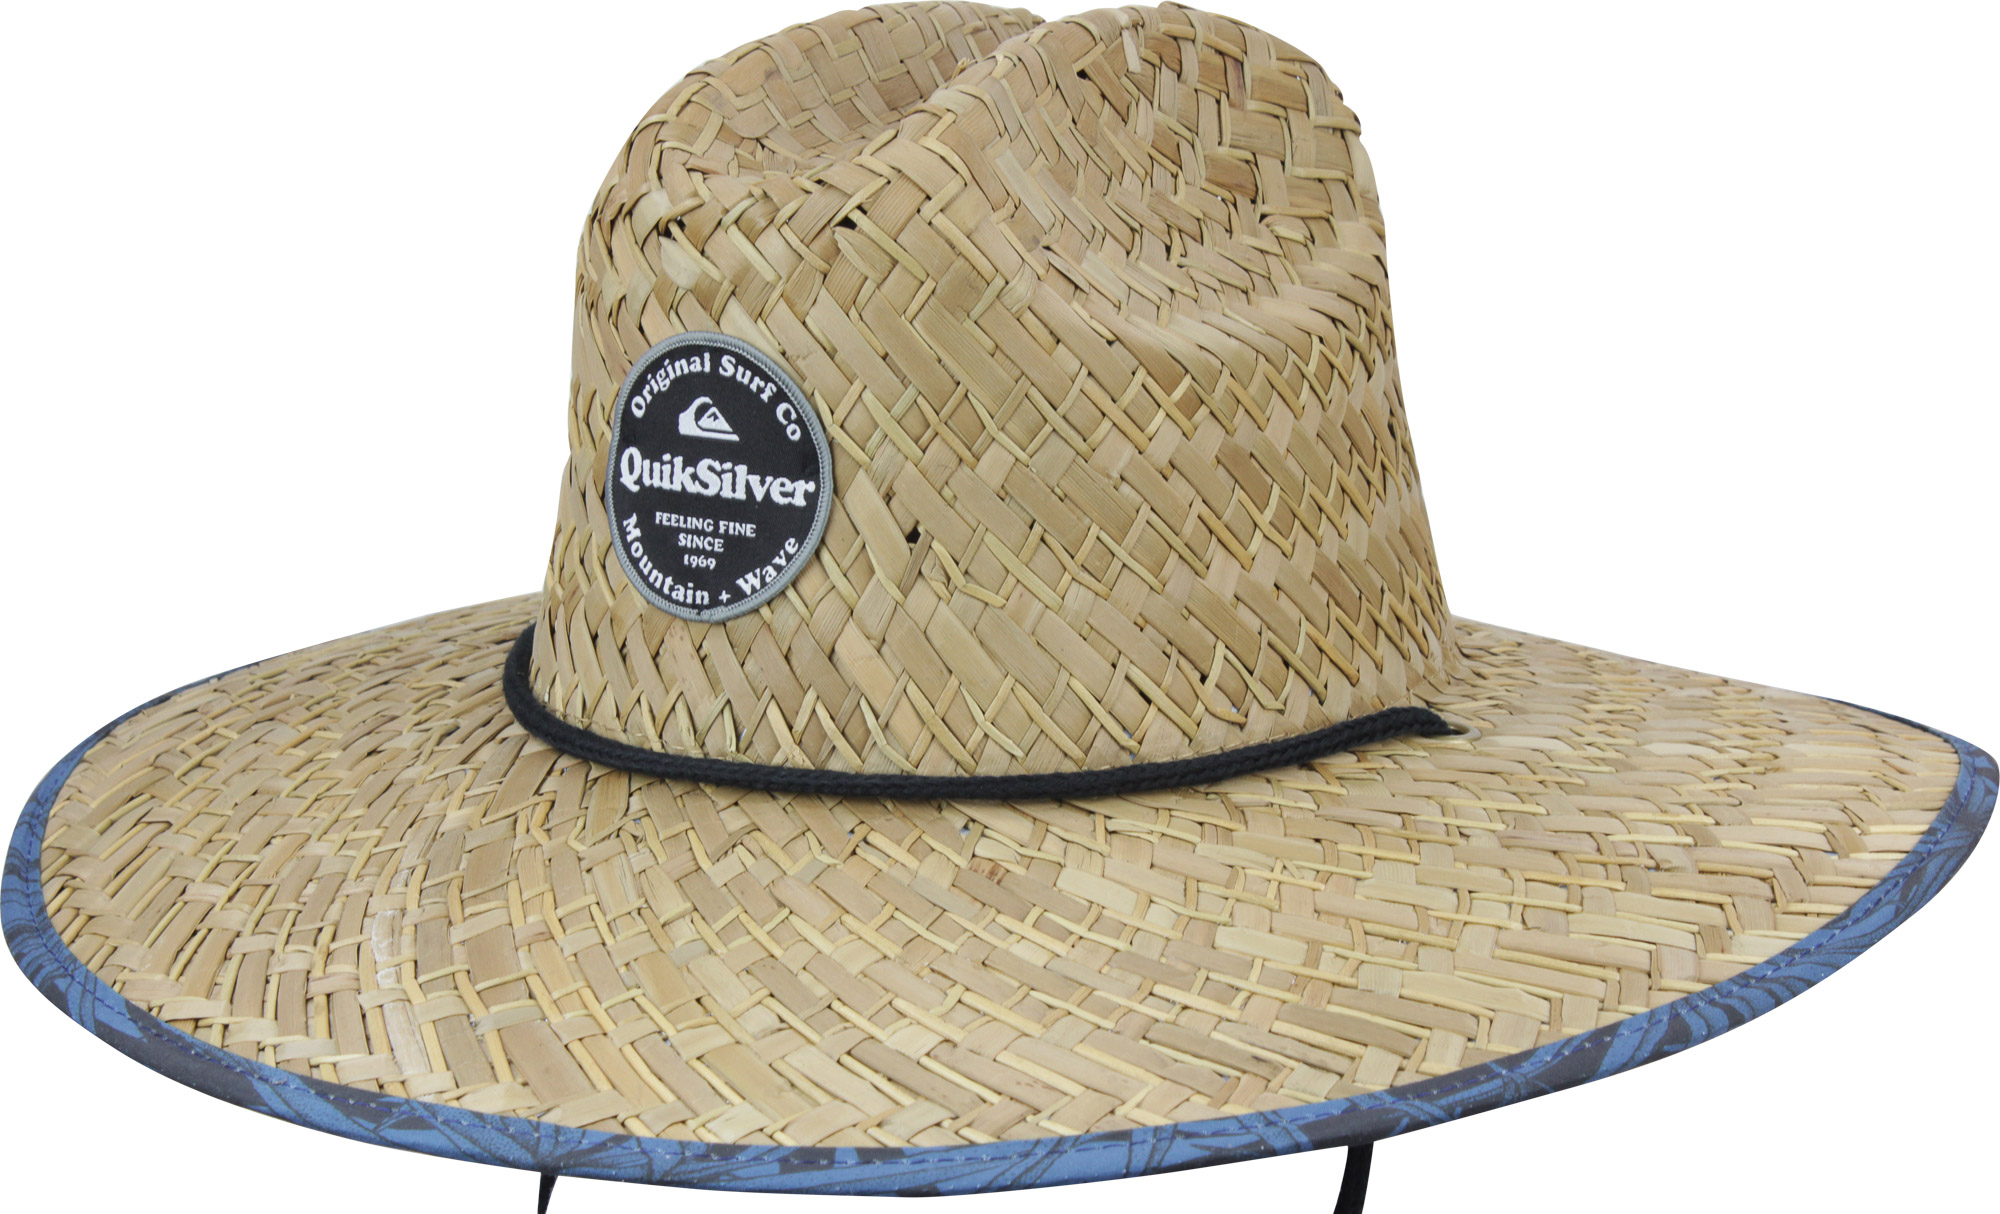 Quiksilver Mens Outsider Repent Wide Brim Straw Sun Hat - Straw Blue ... 18d0dc6d90b0